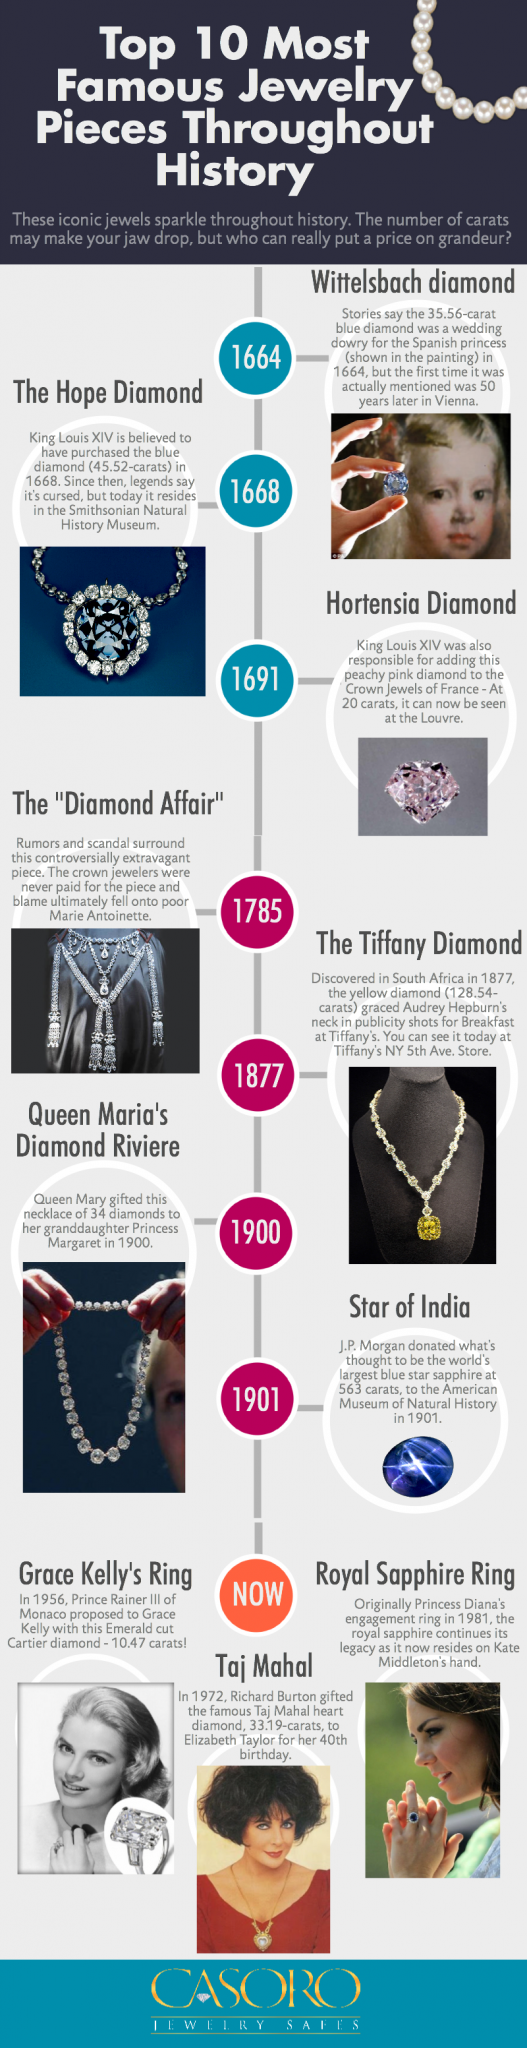 Most Famous Jewelry Pieces Throughout History - Casoro Jewelry Safes